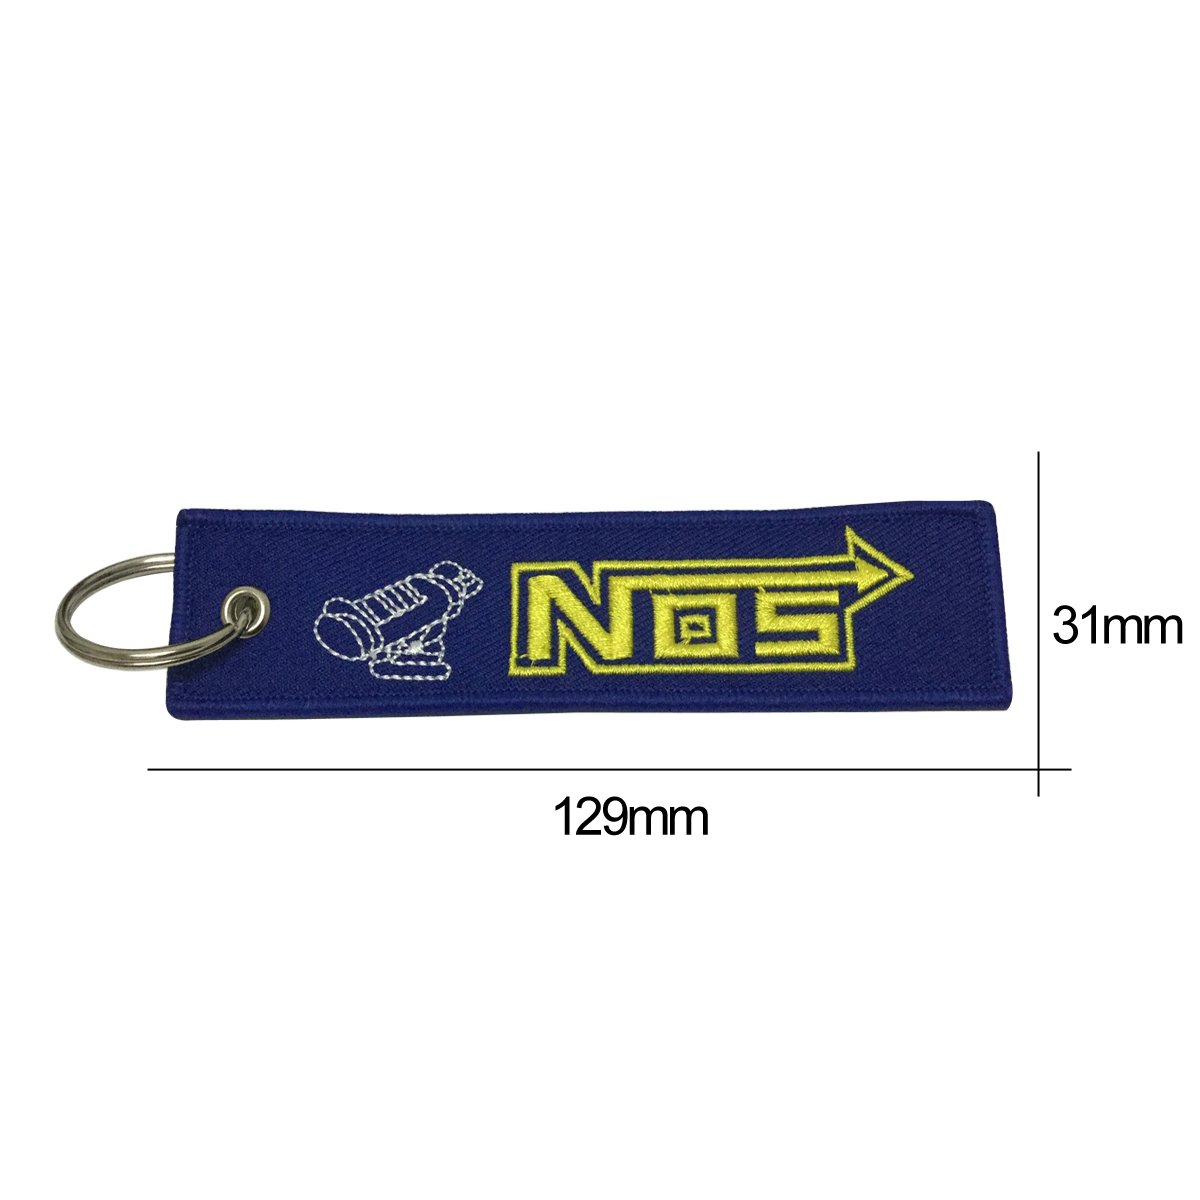 Amazon.com: Nice Tagg 1pcs Blue Color Nos Turbo Tag Keychain Accessories Sporty Gifts: Automotive